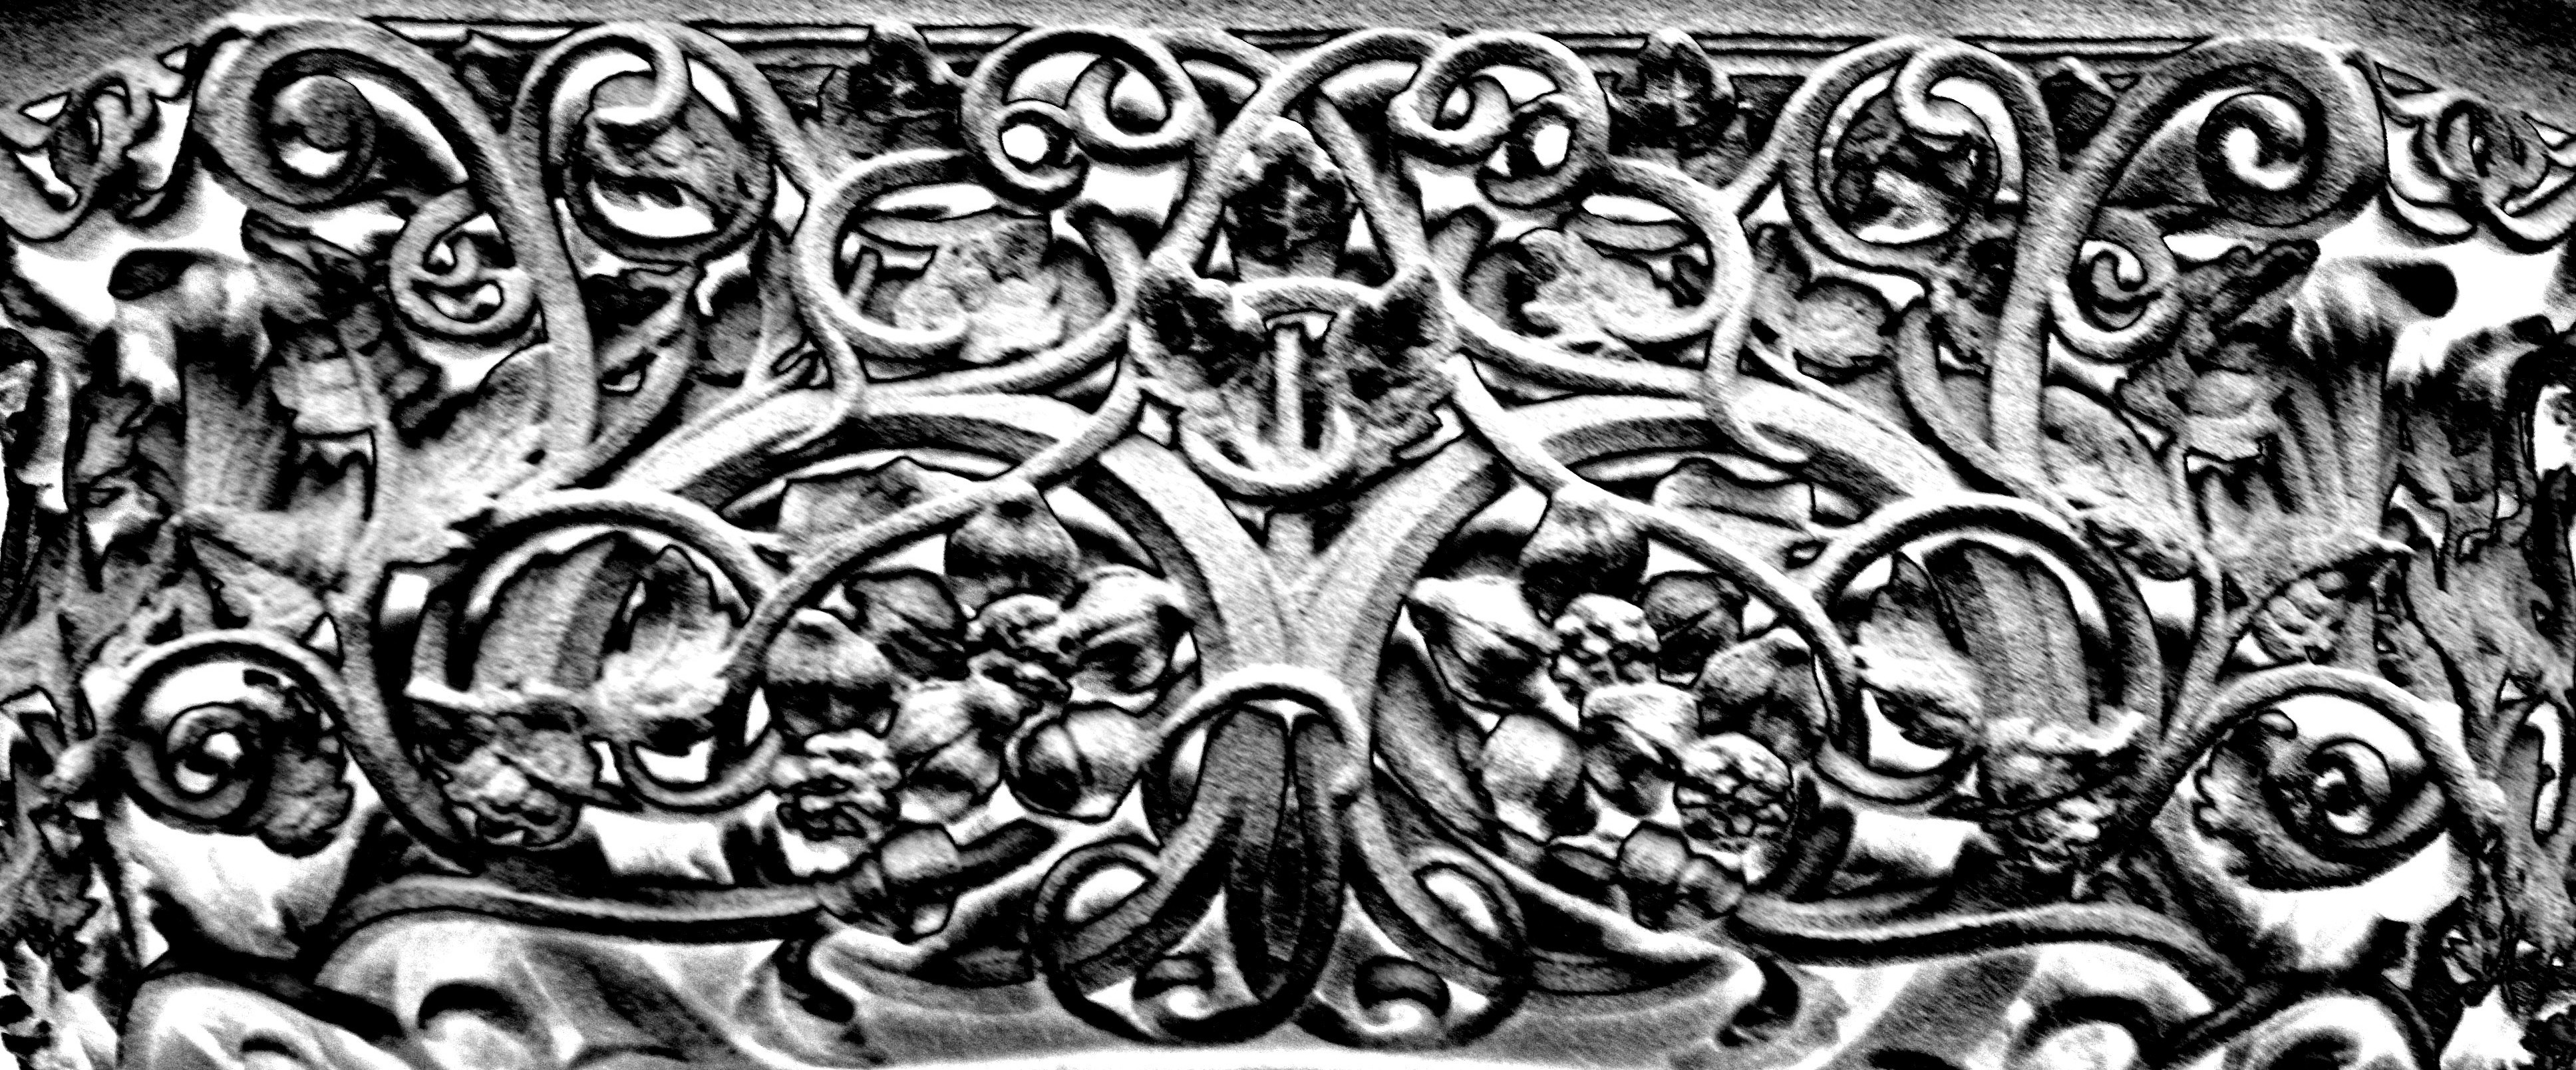 scrollwork patterns in stone carvings